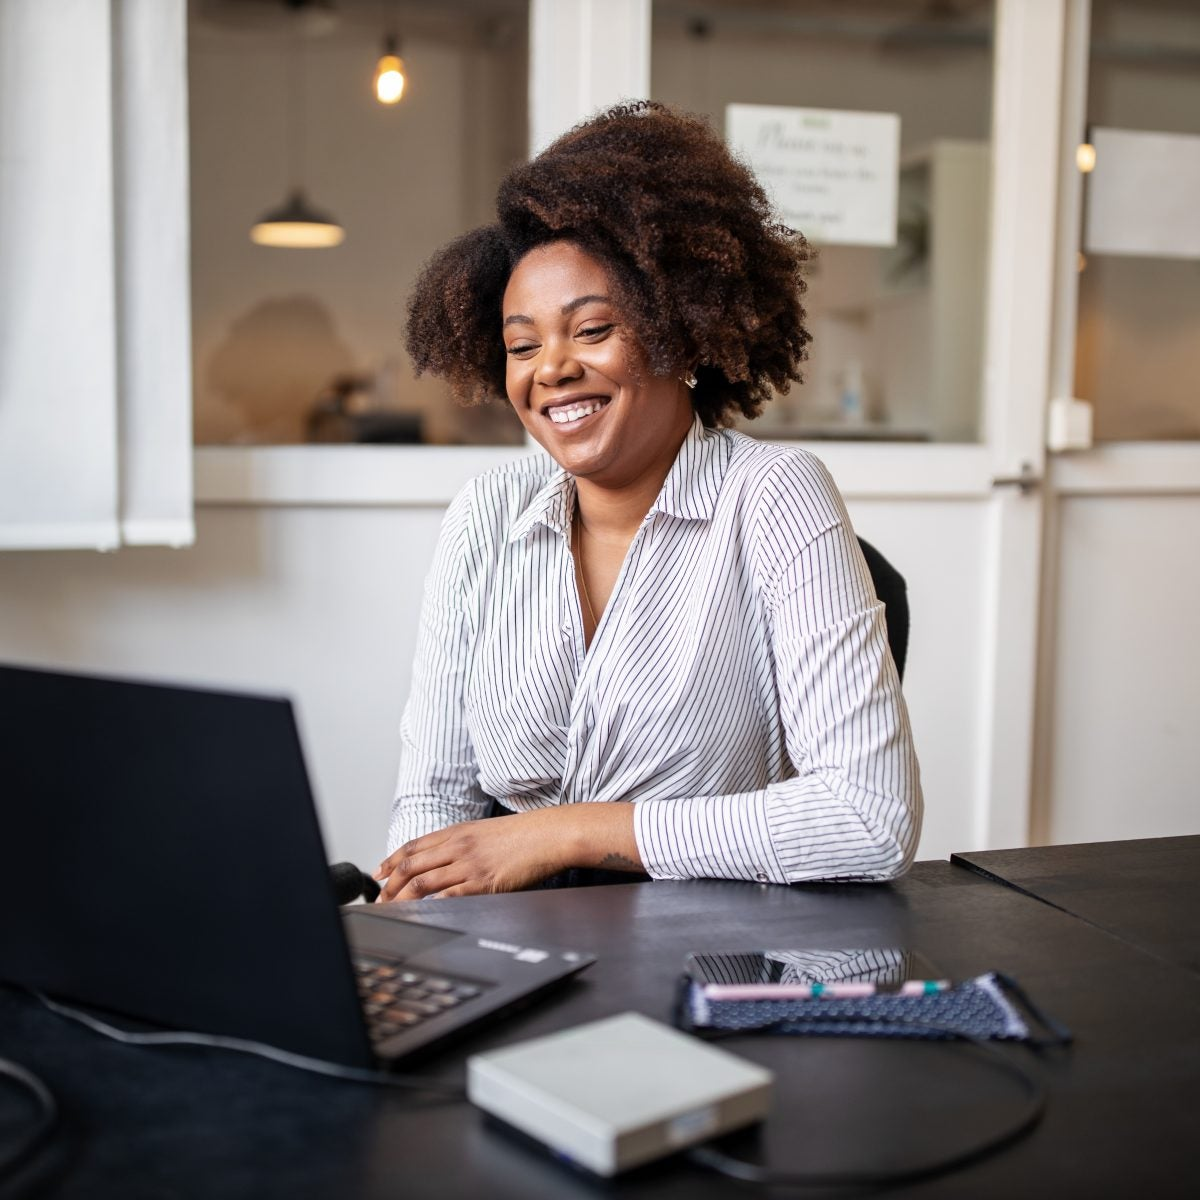 Google is Supporting Black Women's Digital Skills With 'Grow With Google' Initiative